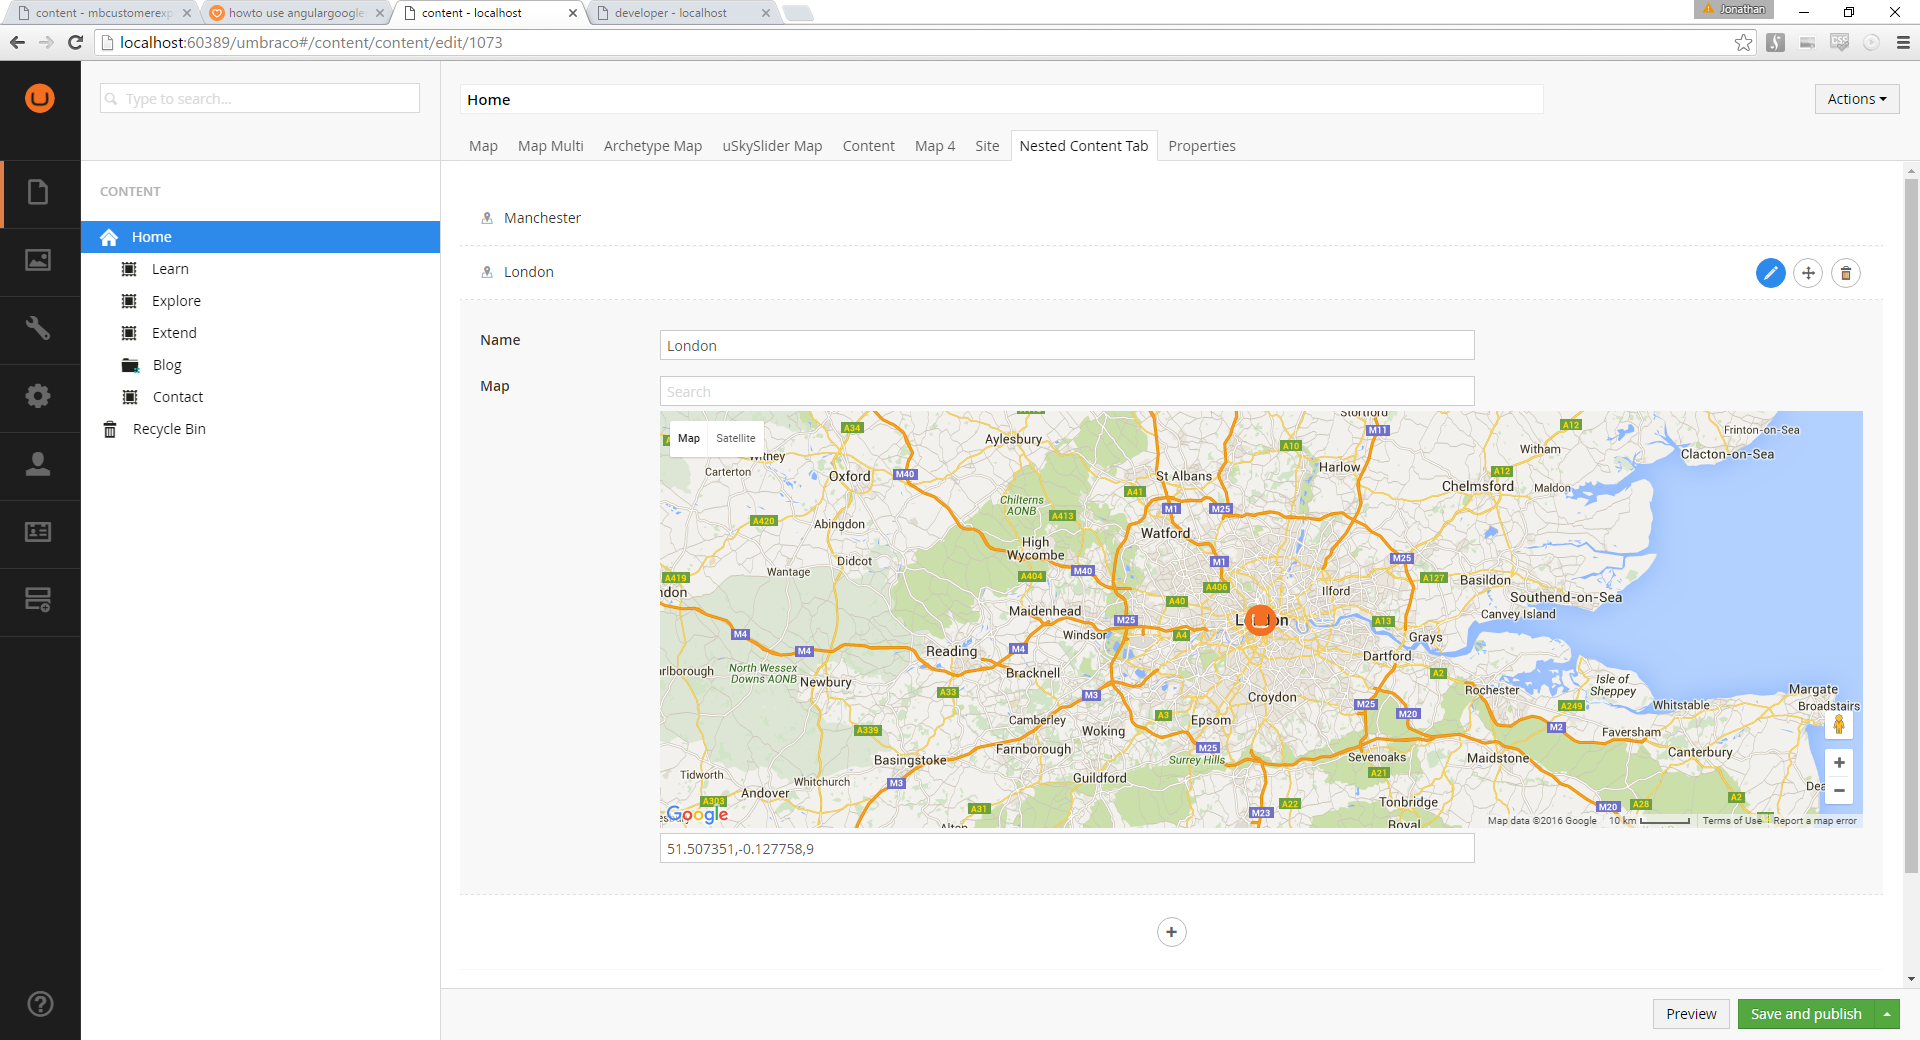 howto use angulargooglemaps with a google api key - Bugs - our